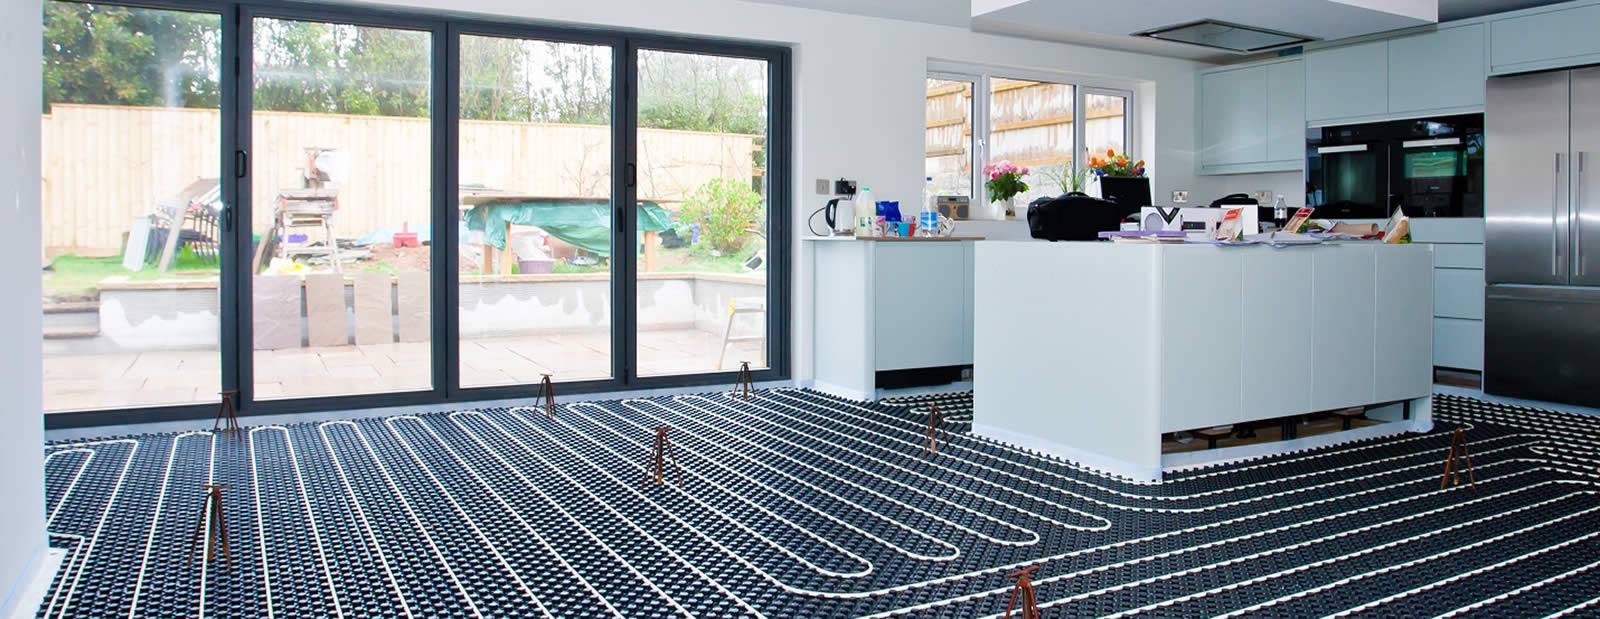 Peter Brown Underfloor Heating Services